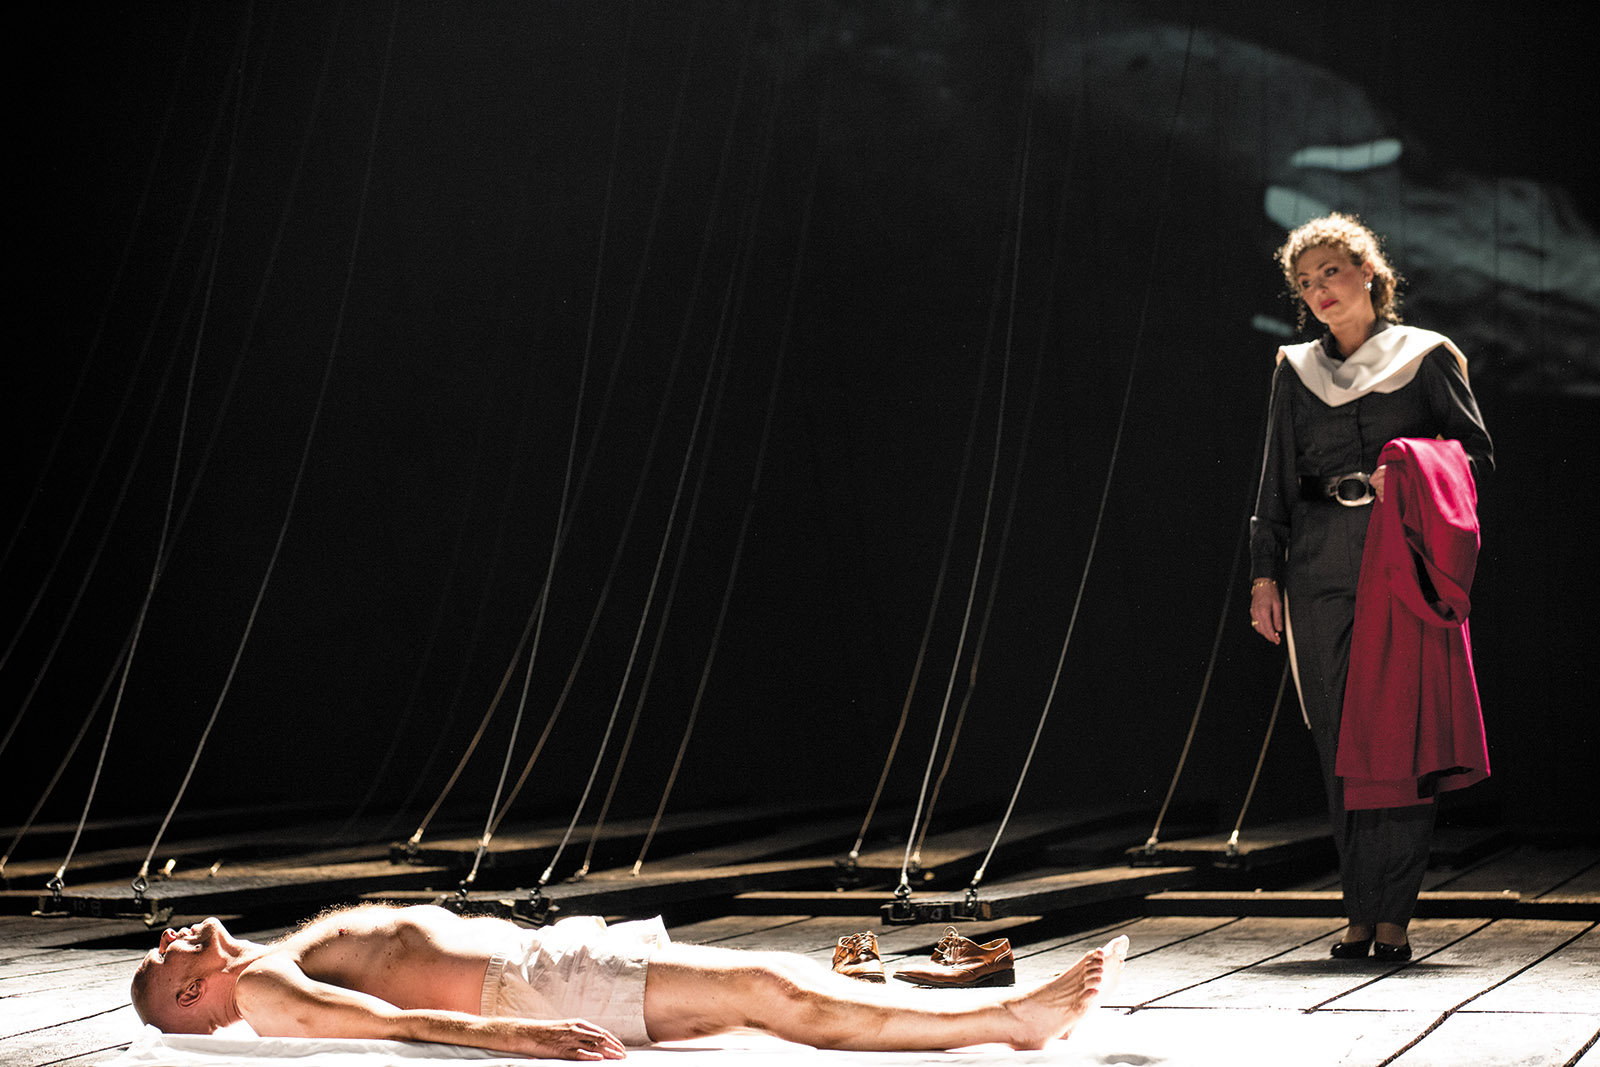 Bo Skovhus as Lear and Annette Dasch as Cordelia in Lear at the Paris Opera